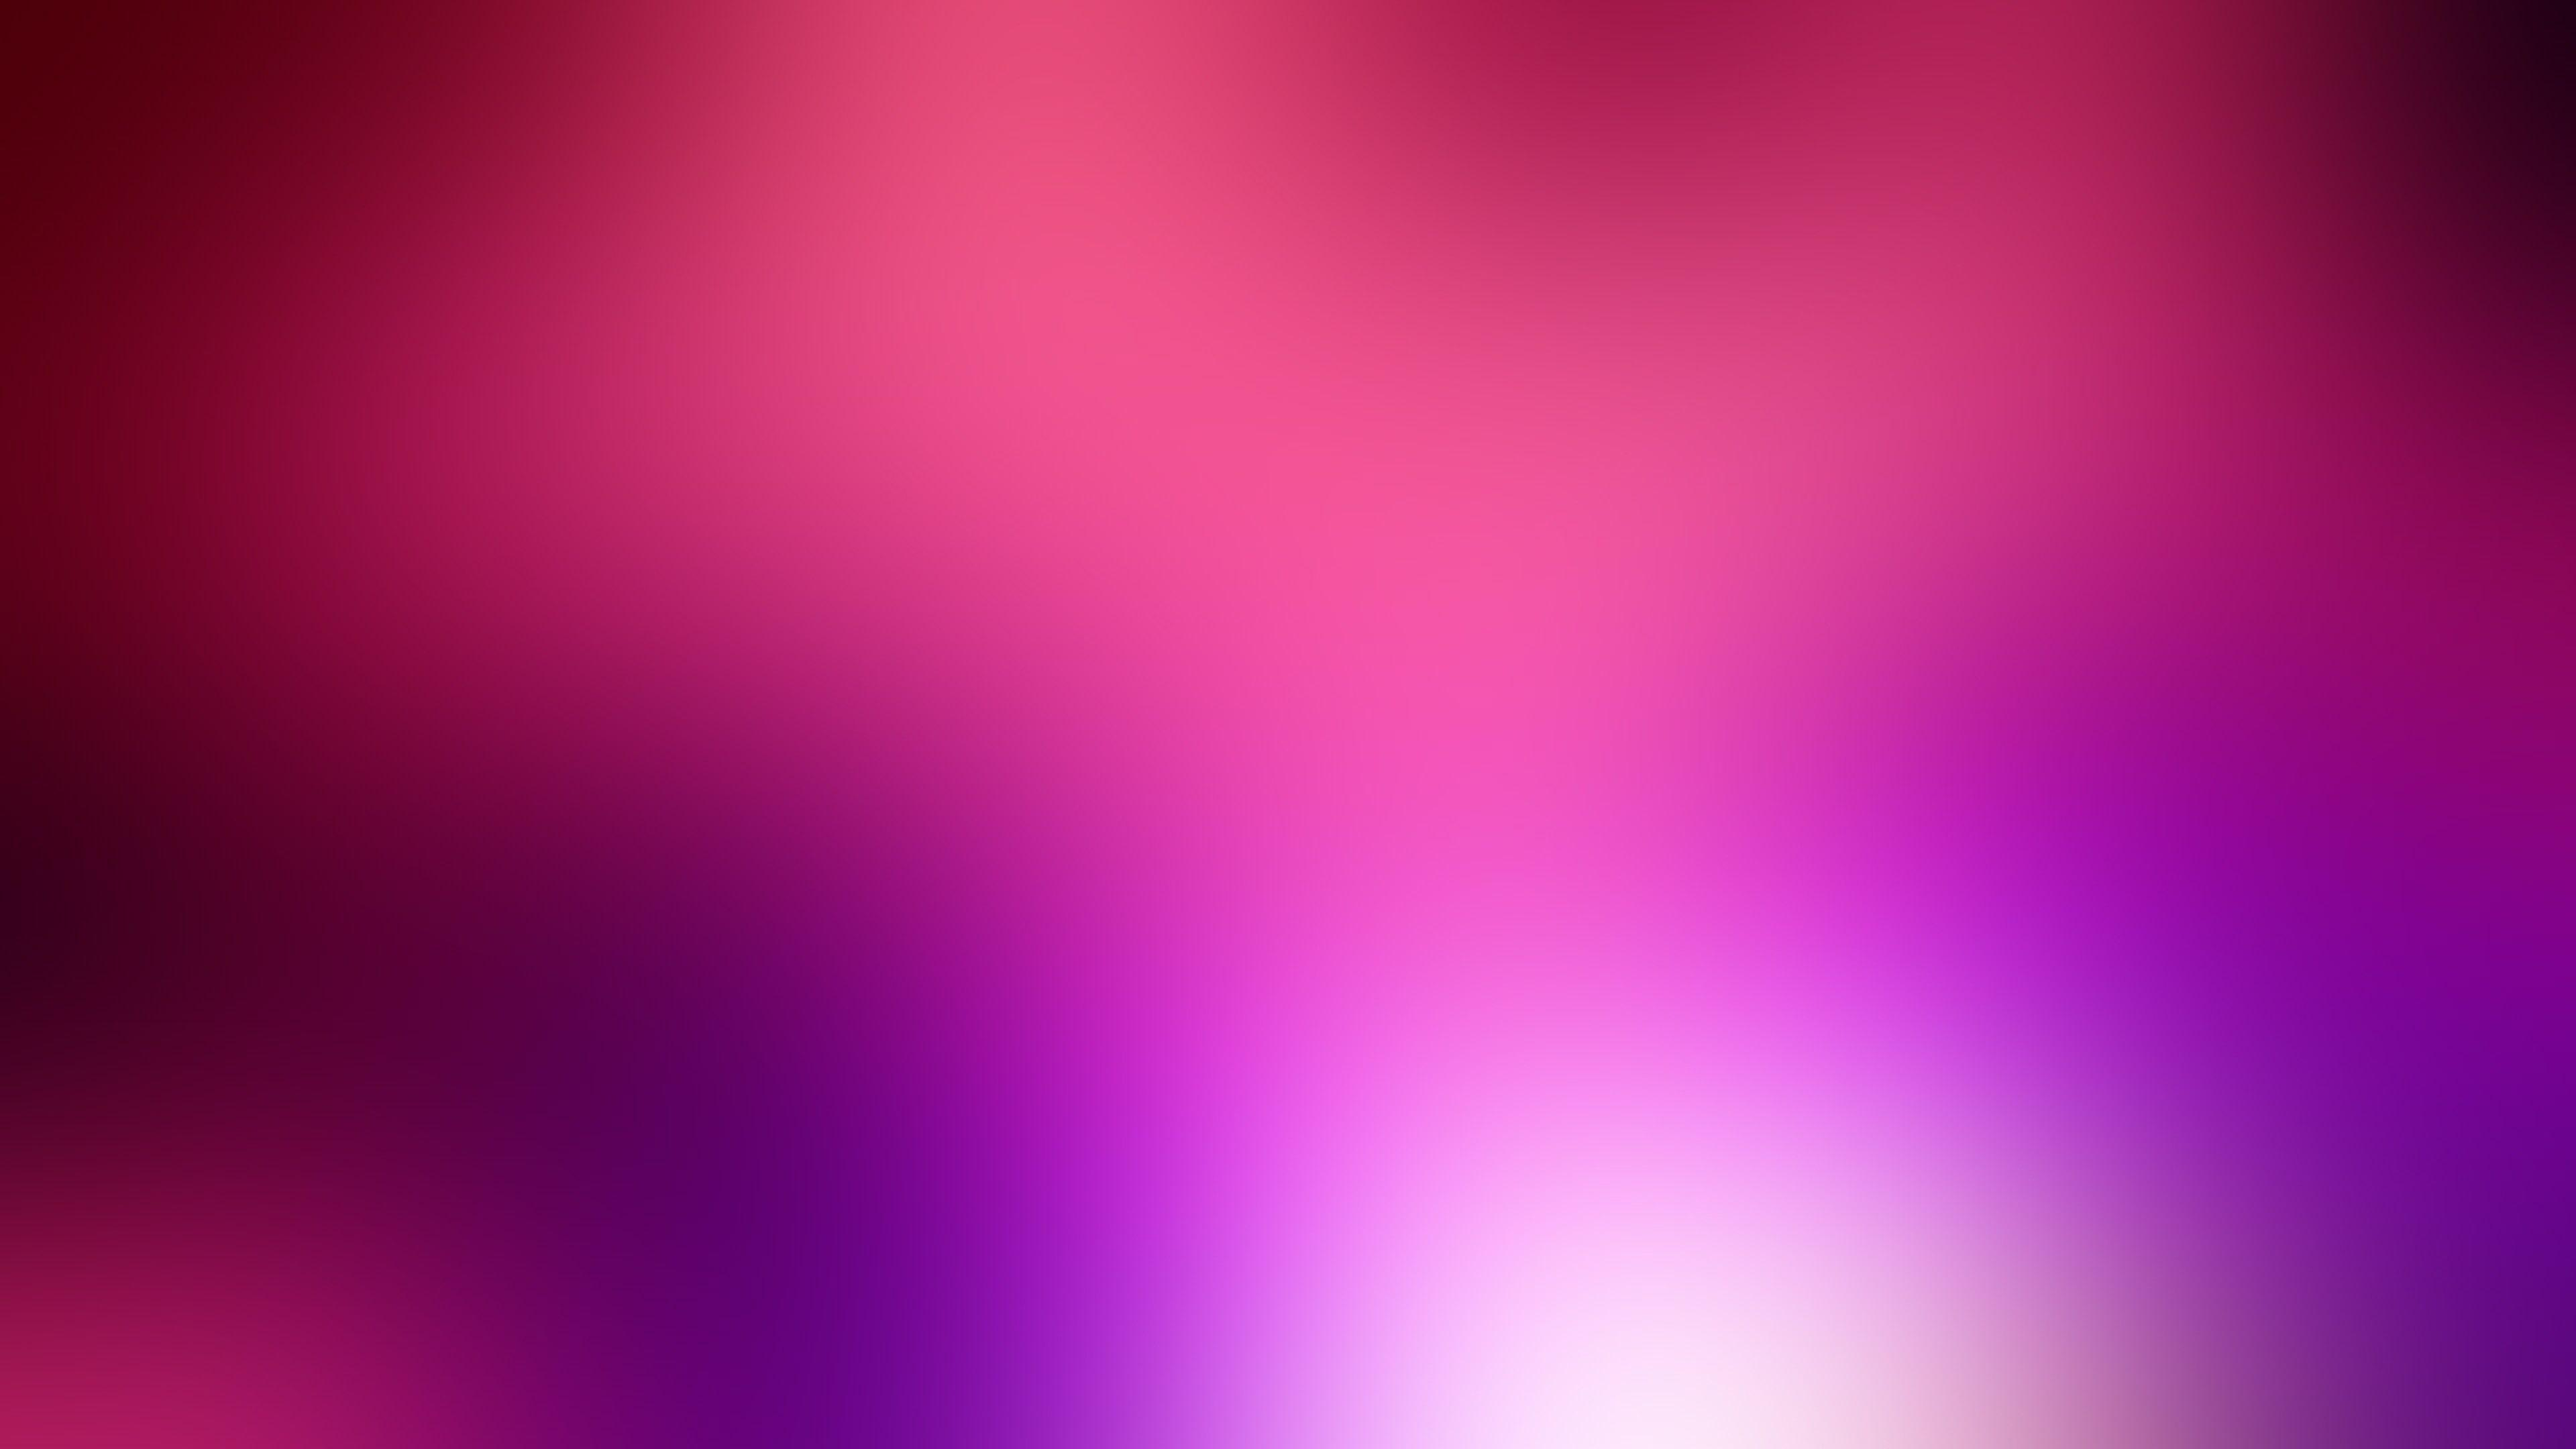 Purple And Pink Wallpapers 3840x2160